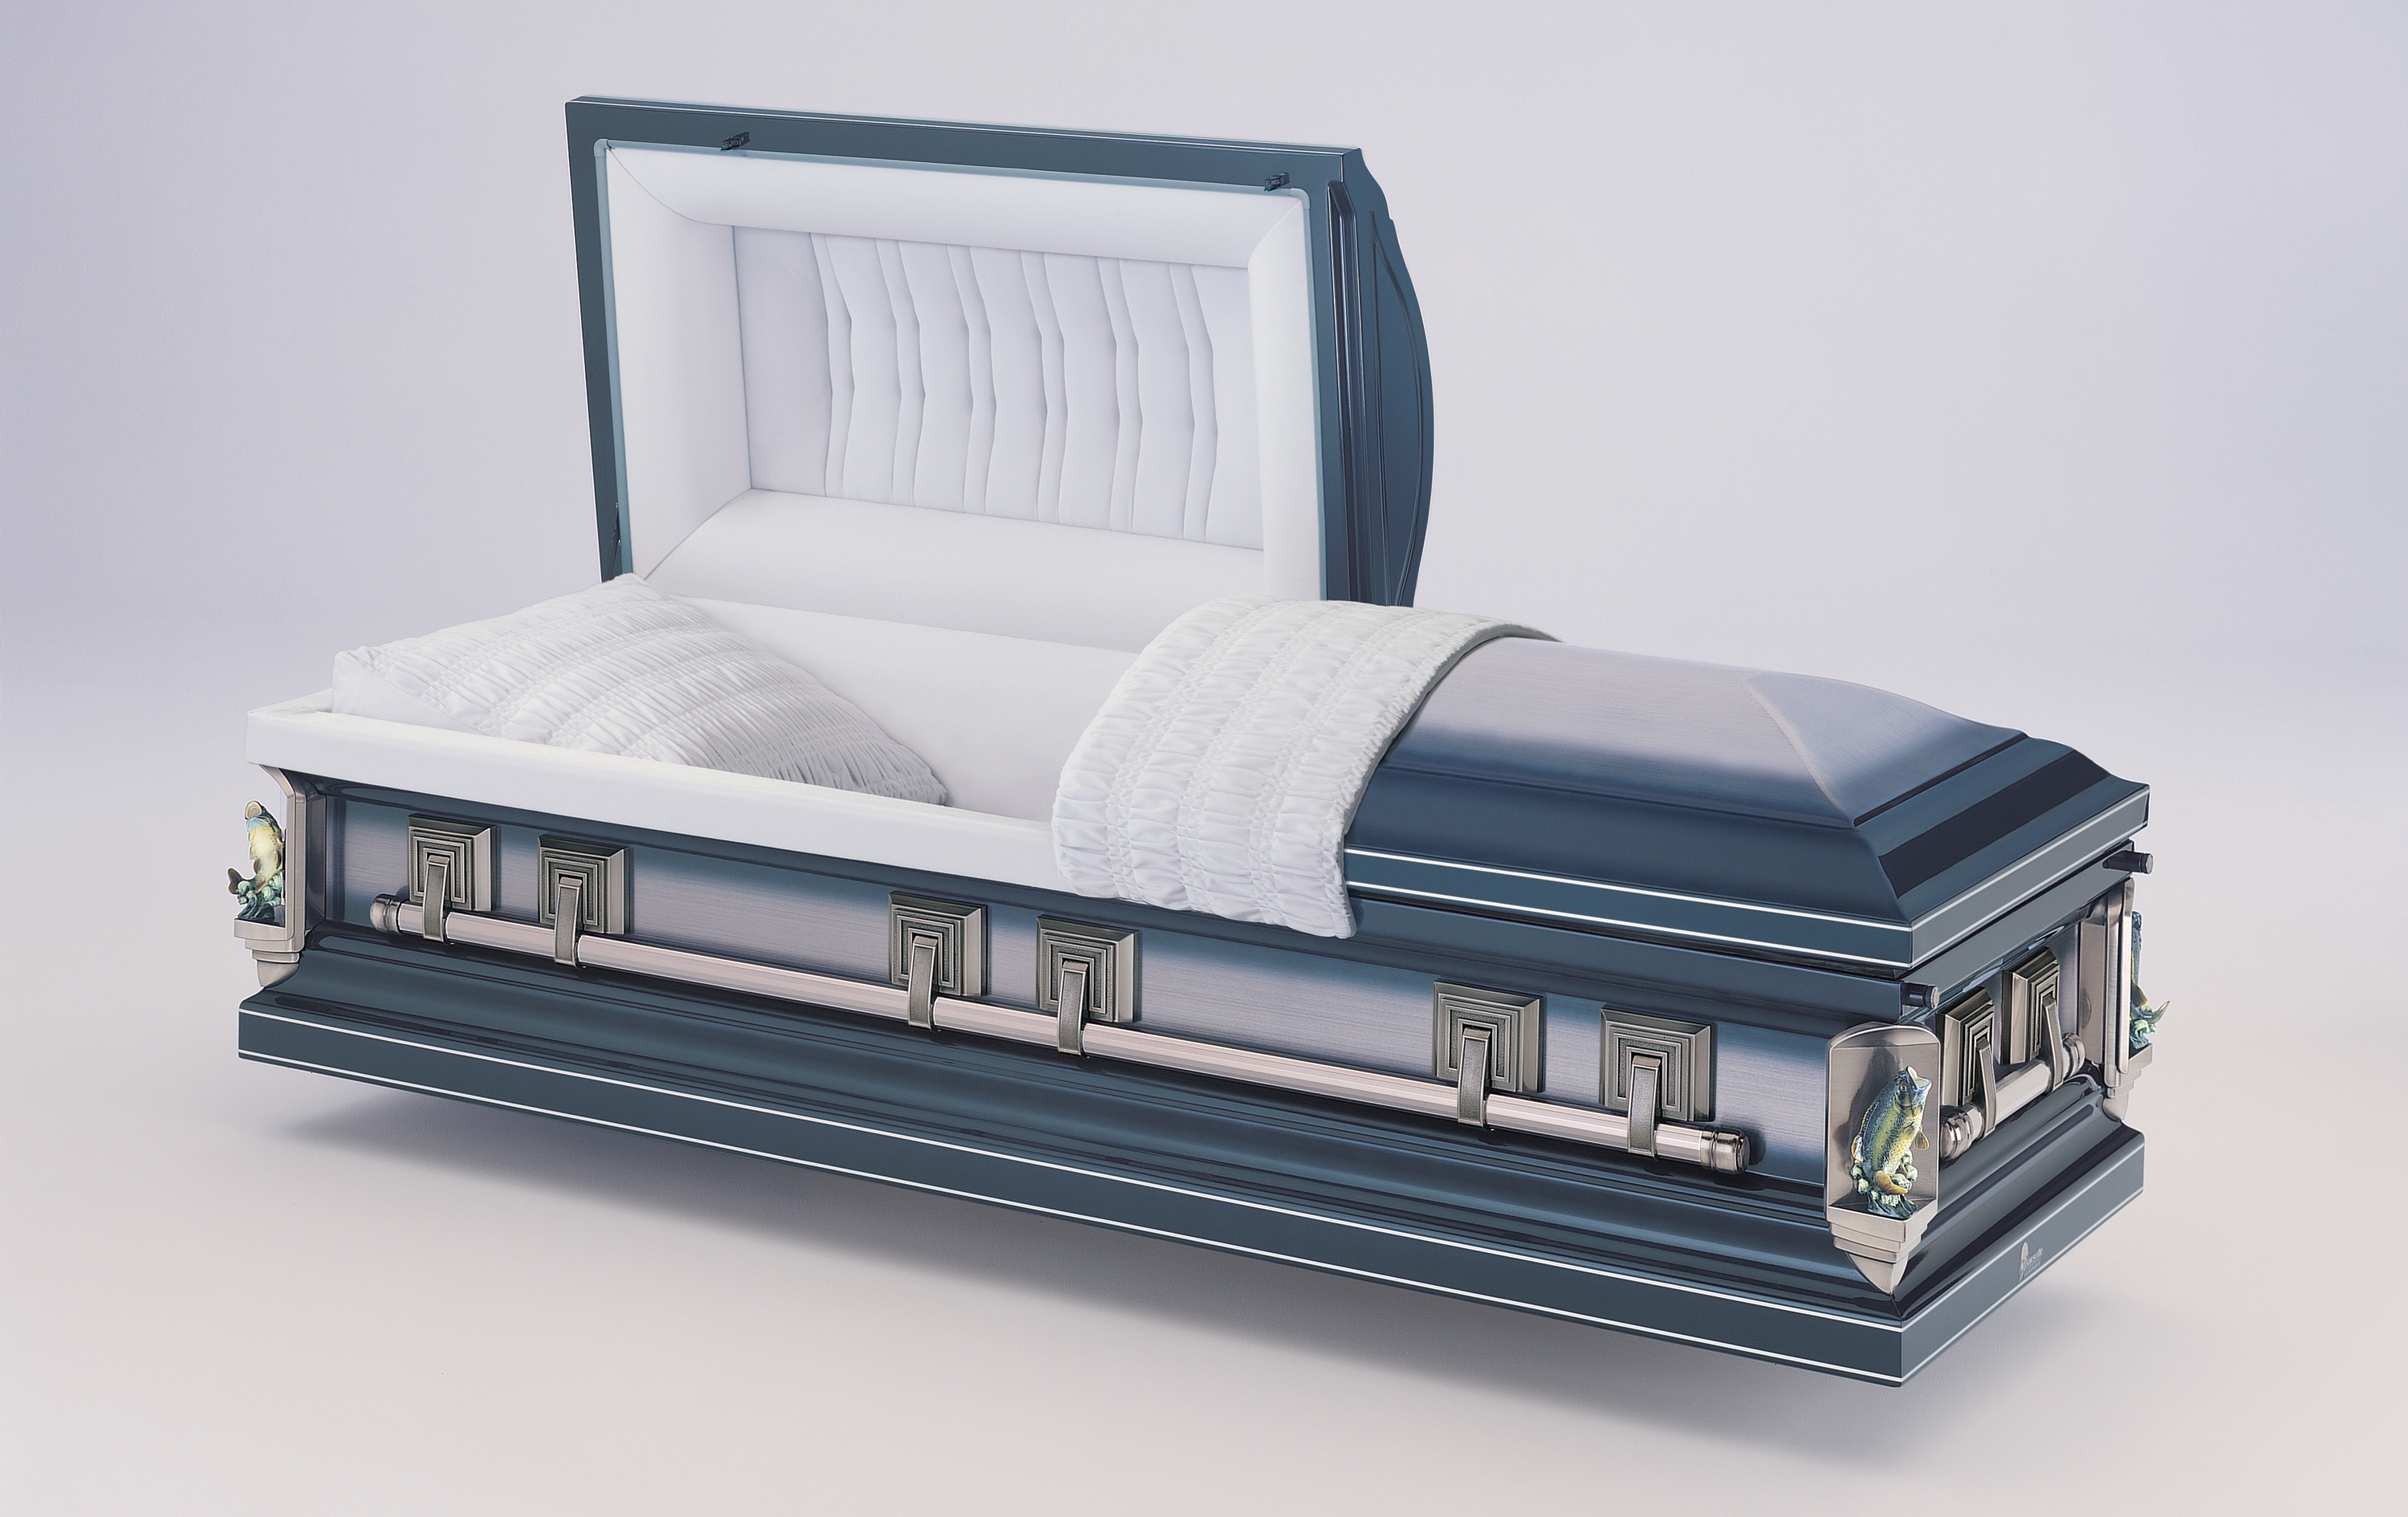 Burial caskets storke funeral home for Custom home selection form